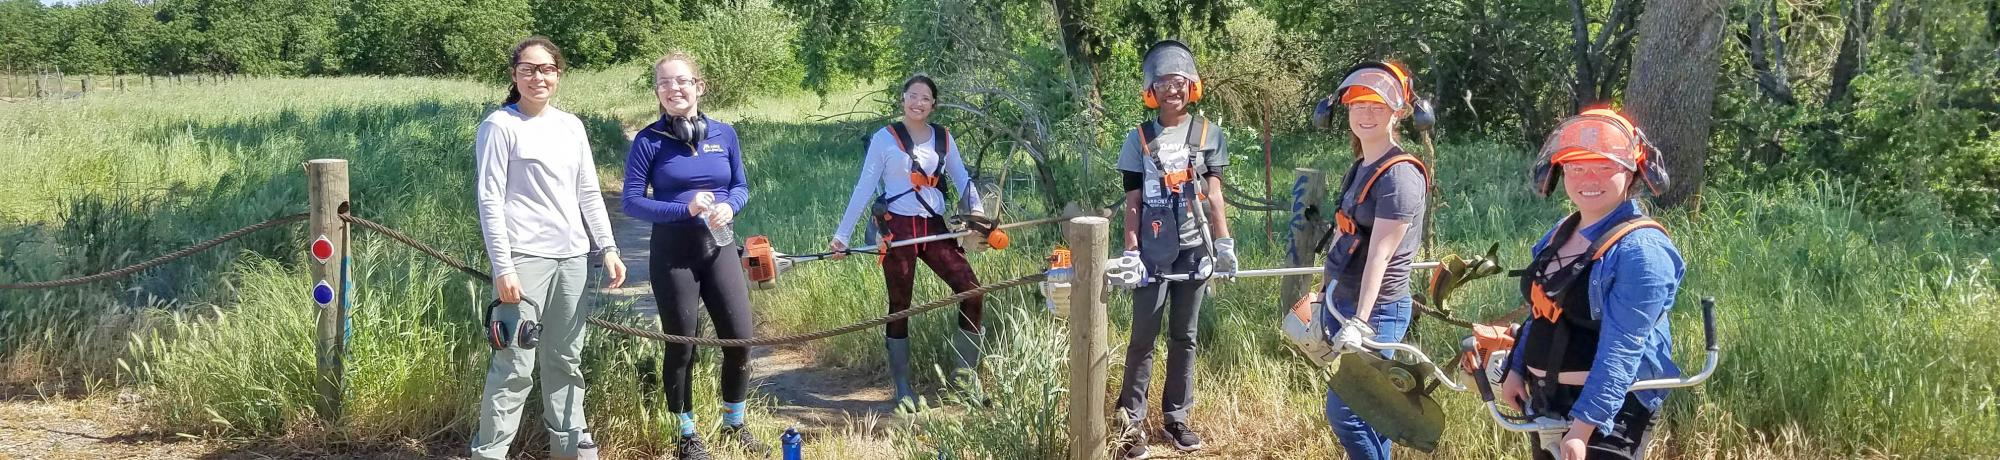 Image of students with weed whackers and other equipment at Putah Creek Riparian Reserve.